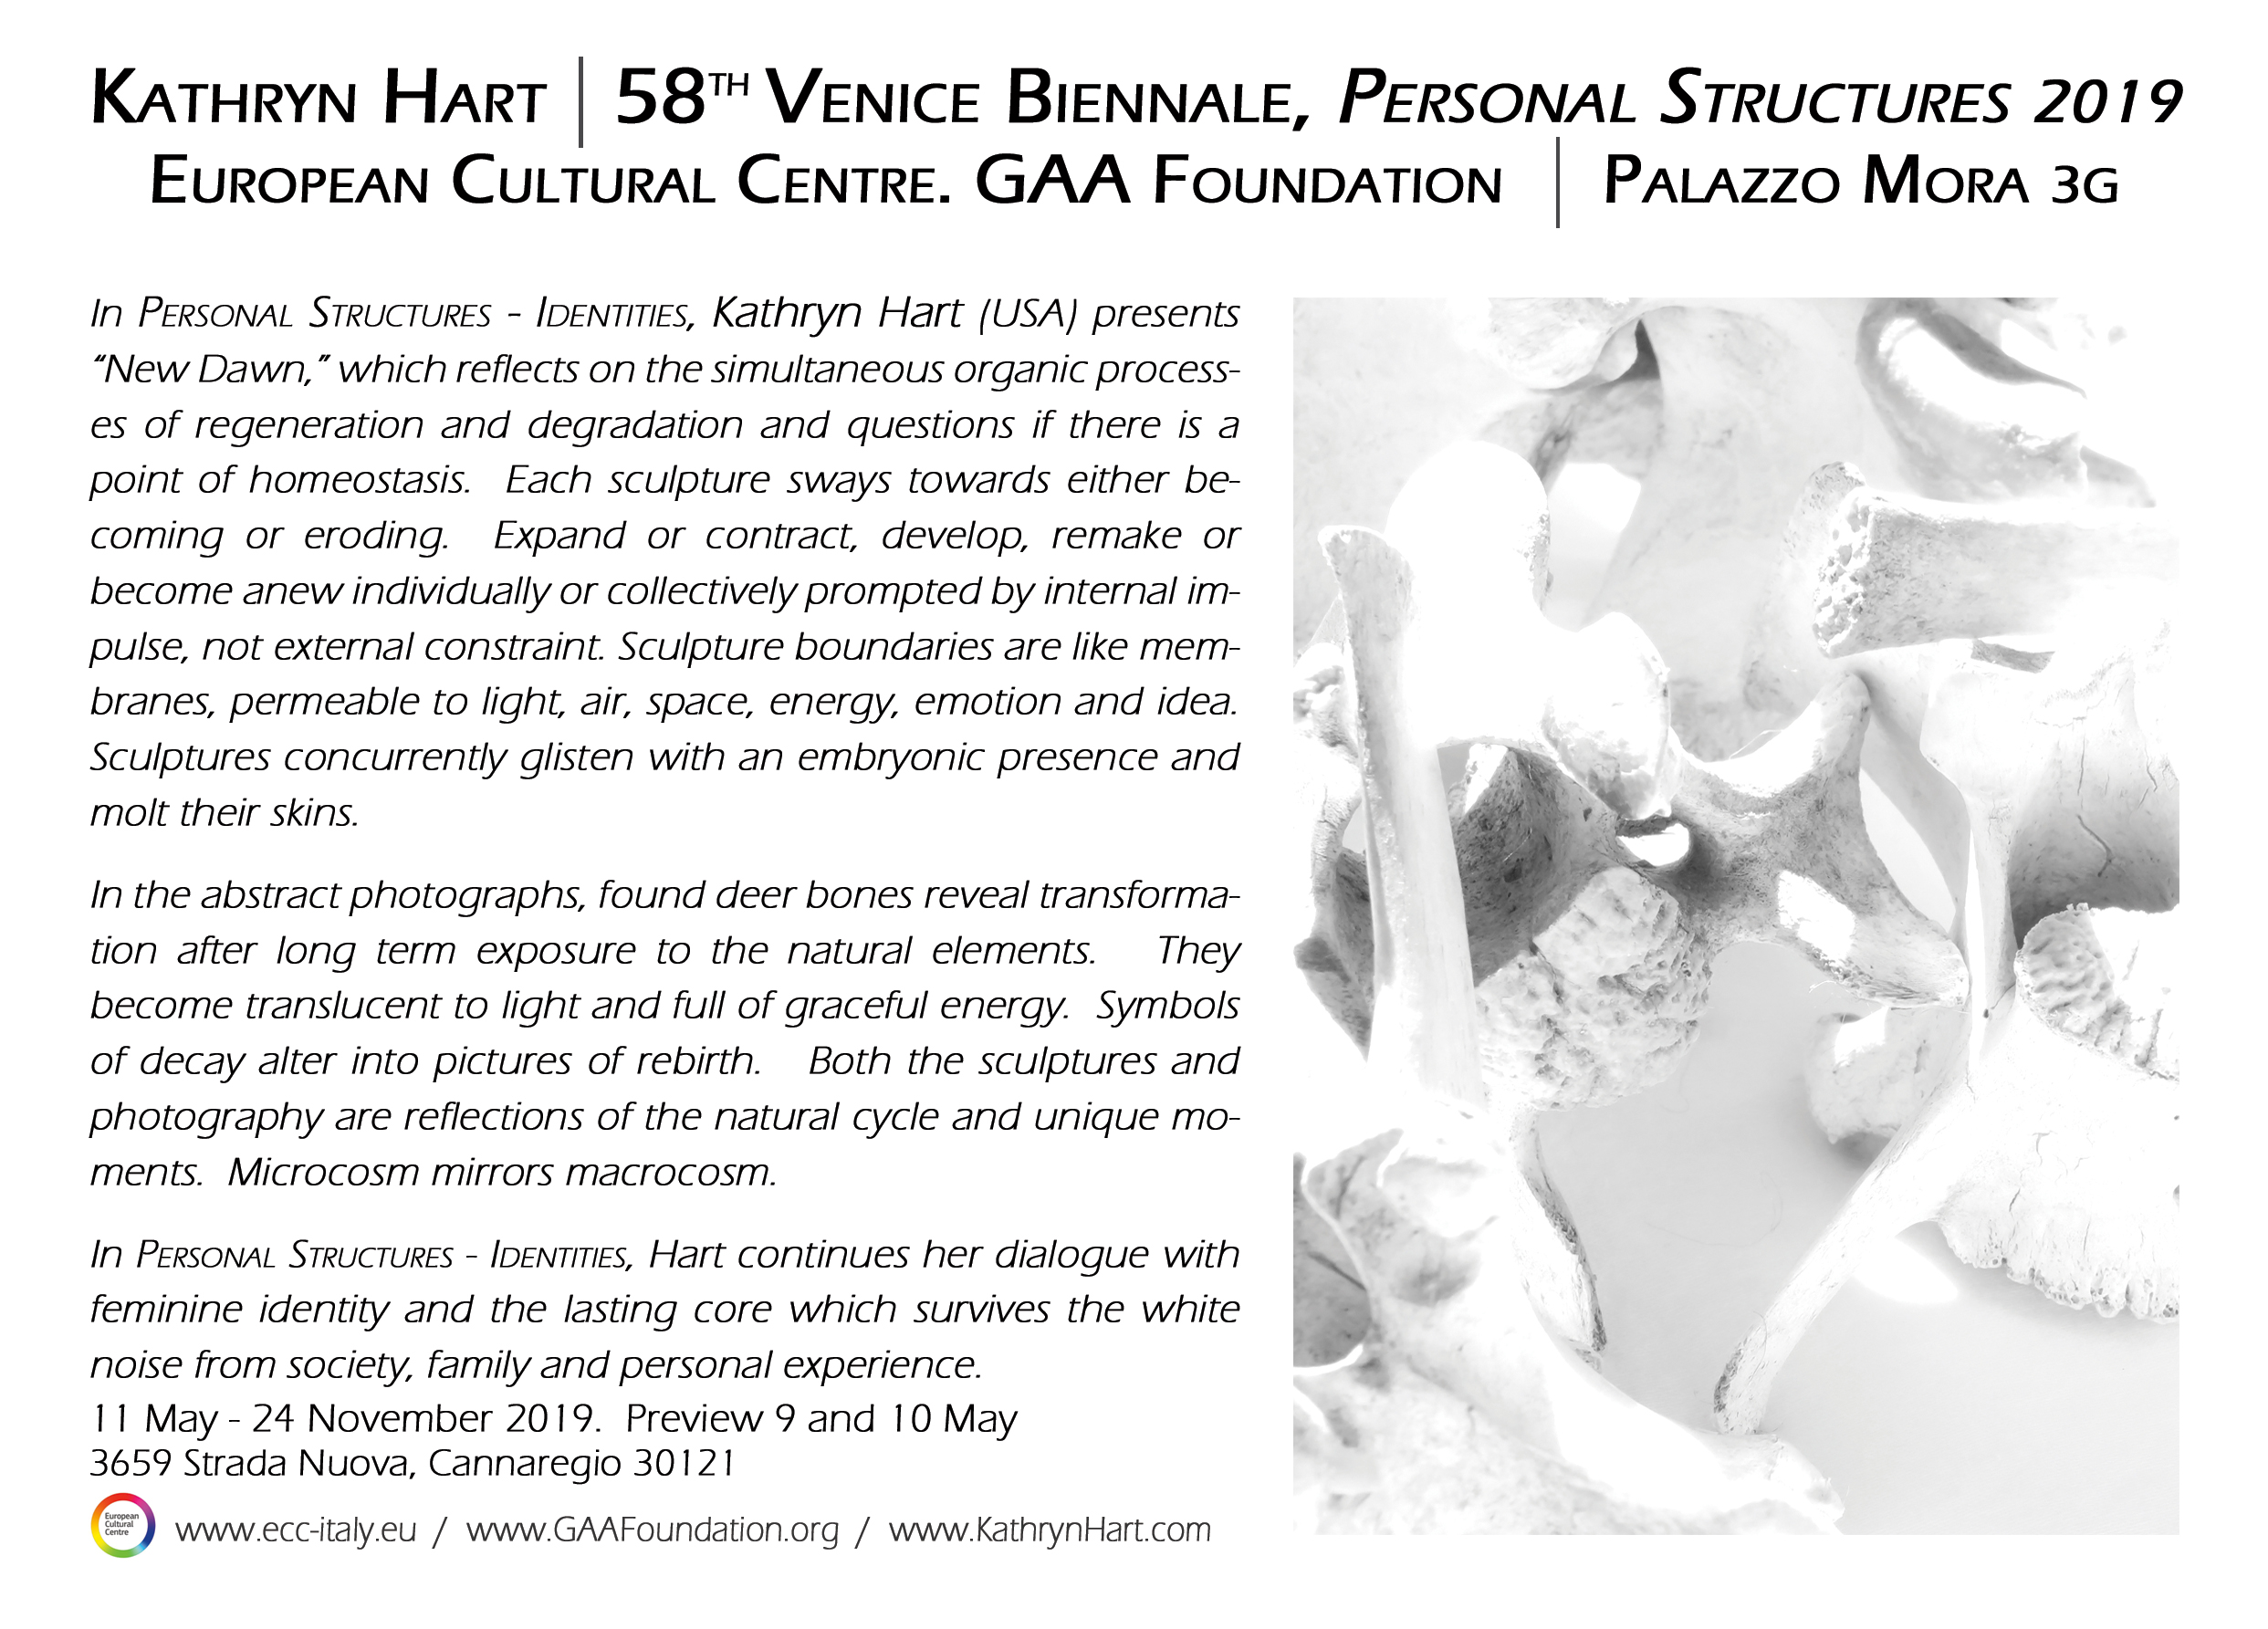 Kathryn Hart in Personal Structures, European Cultural Centre, Palazzo Mora, 58th Venice Biennale